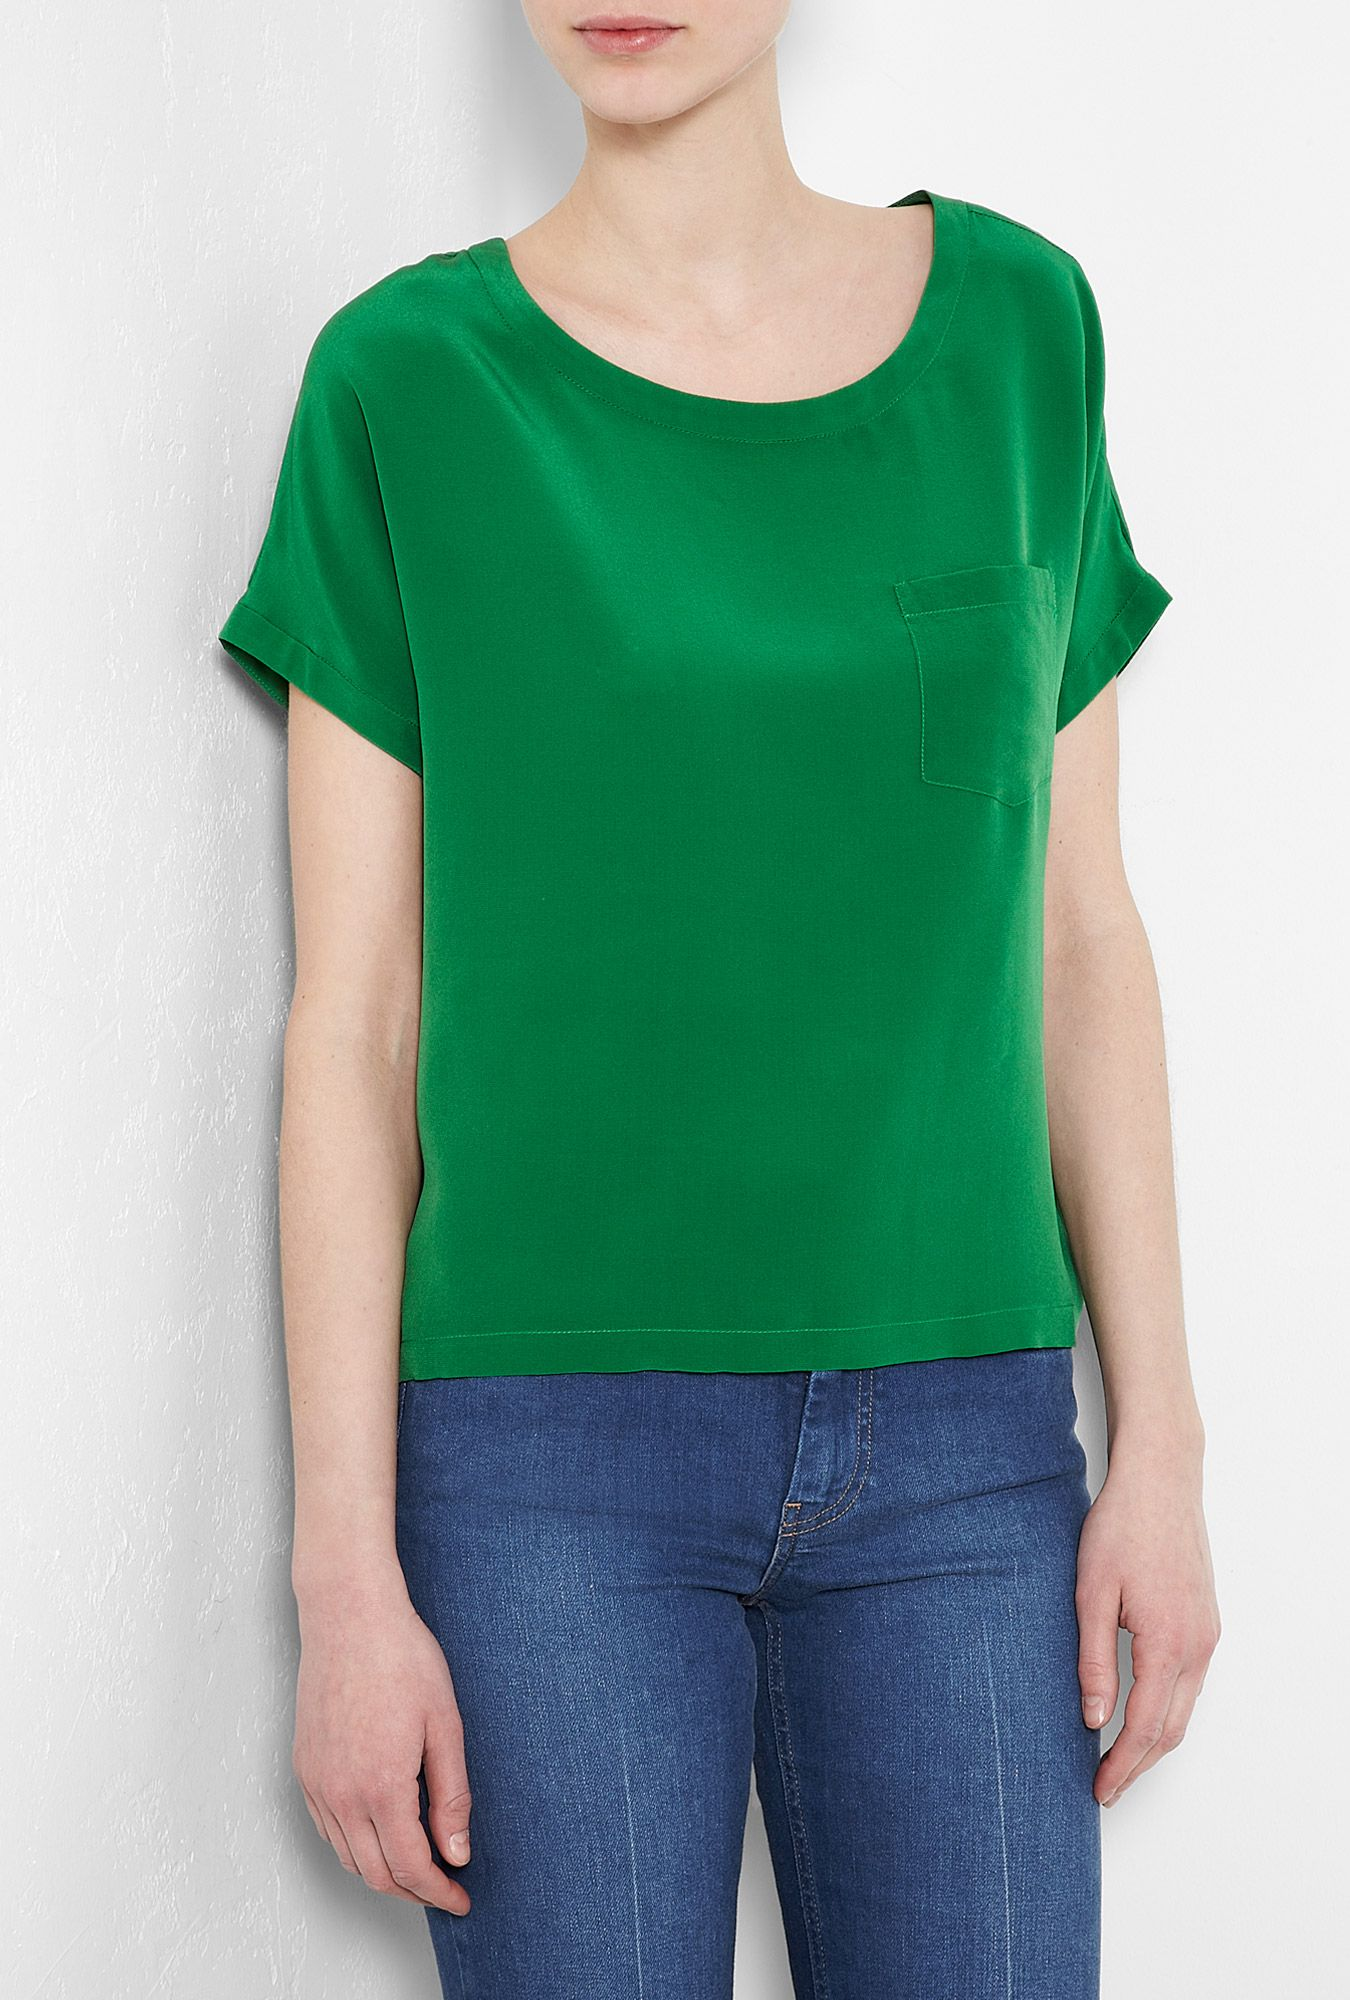 34424cfc4323c SEE BY CHLOÉ GREEN SILK TOP | | style obsessions | | Tops, Silk top ...